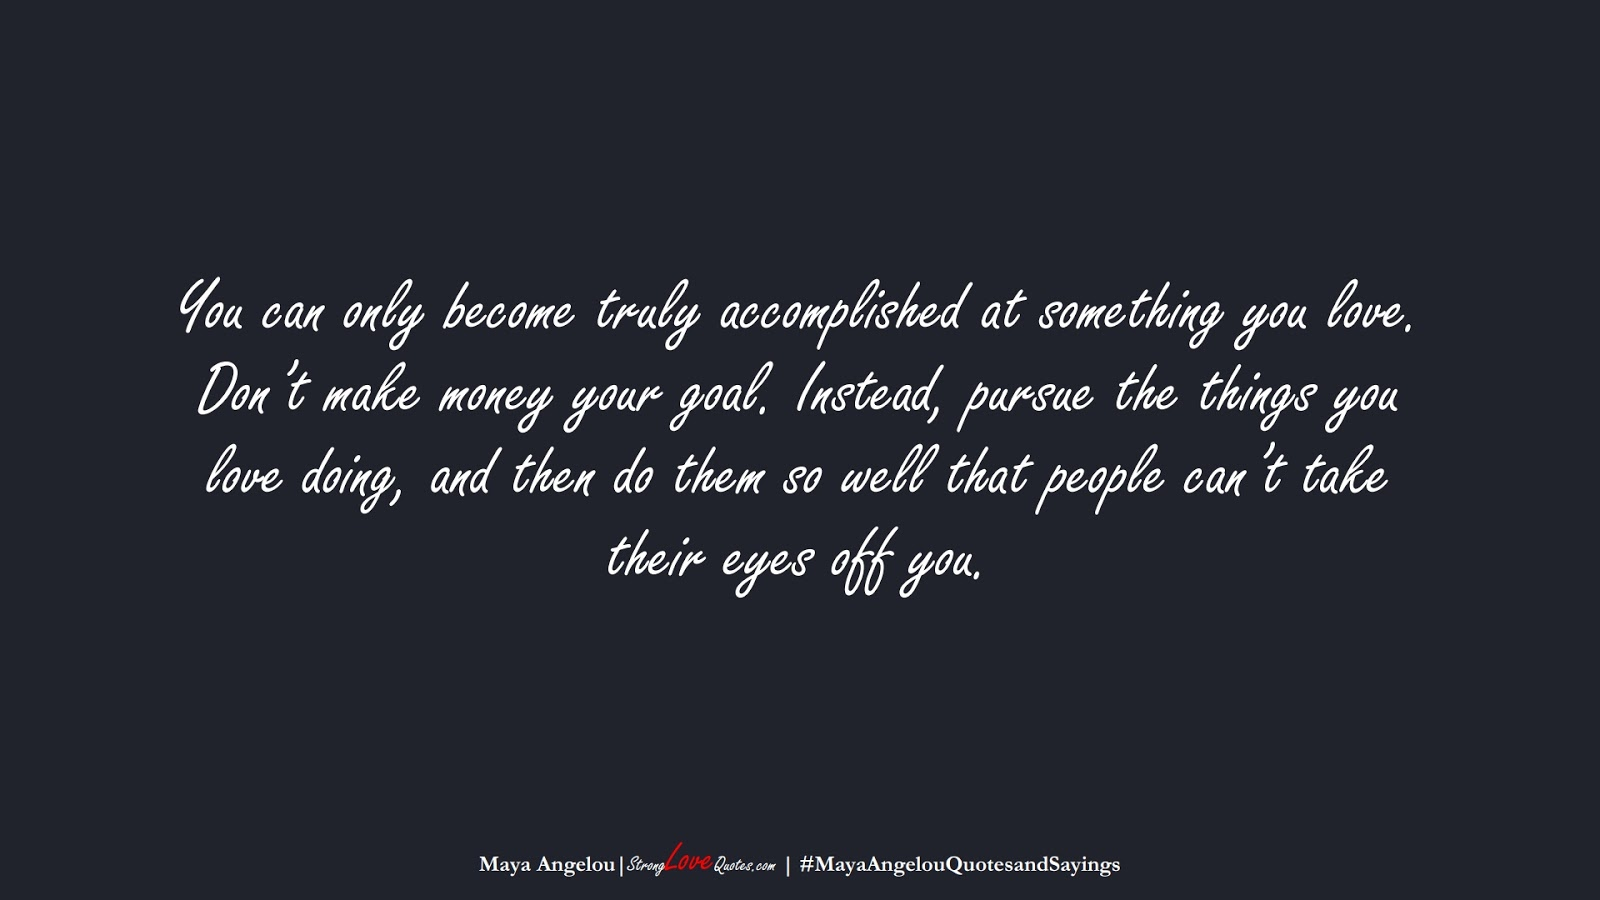 You can only become truly accomplished at something you love. Don't make money your goal. Instead, pursue the things you love doing, and then do them so well that people can't take their eyes off you. (Maya Angelou);  #MayaAngelouQuotesandSayings